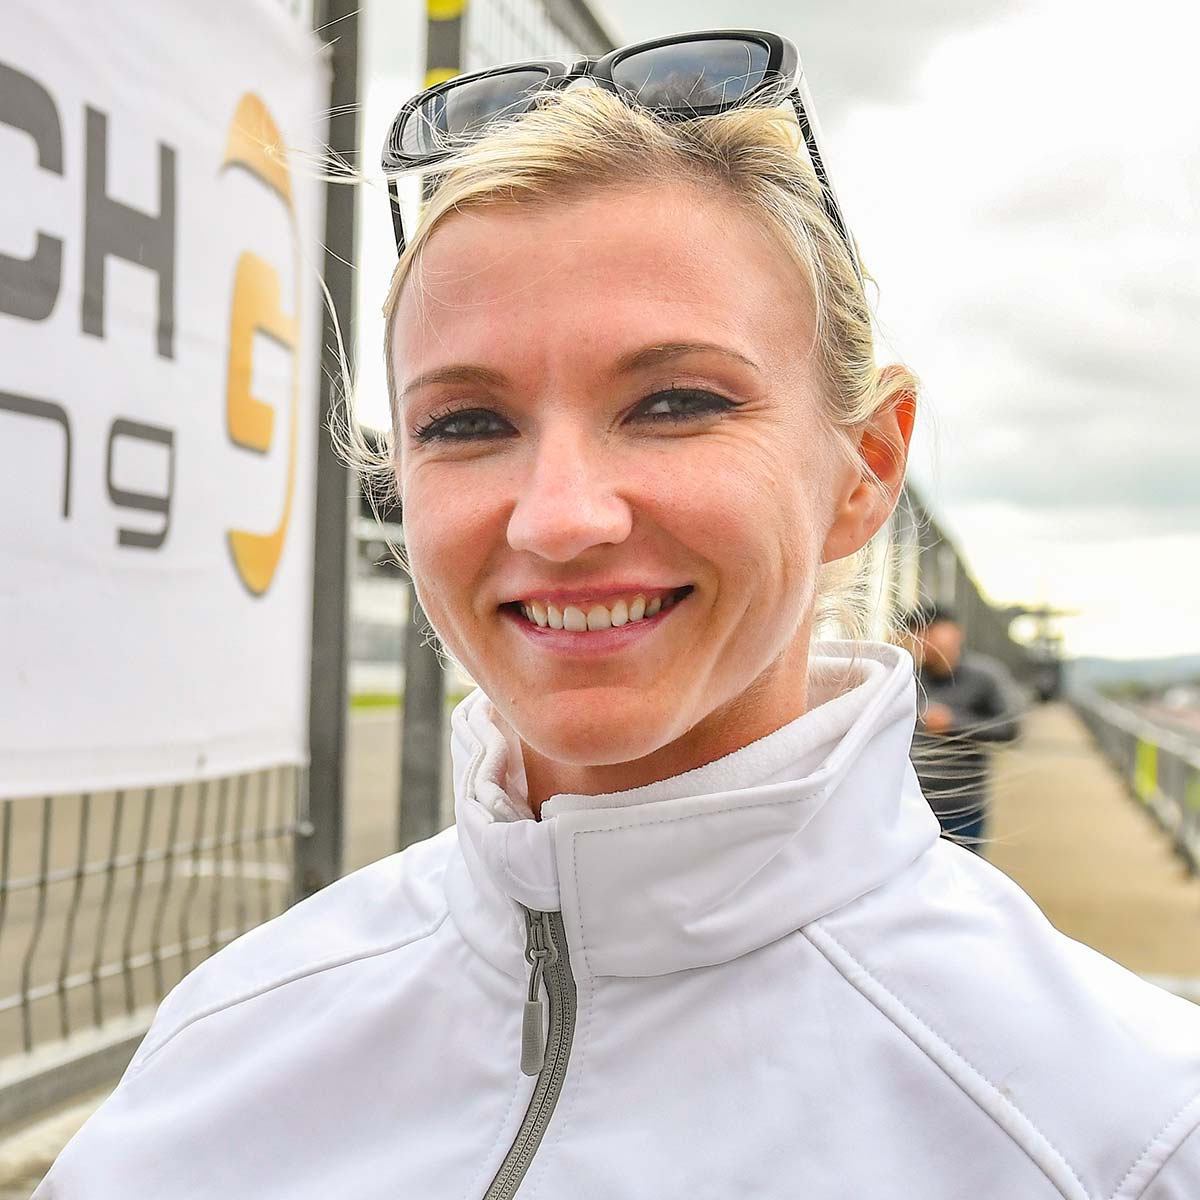 GEDLICH Racing - Irina Gedlich, Eventmanagement & Finanzen